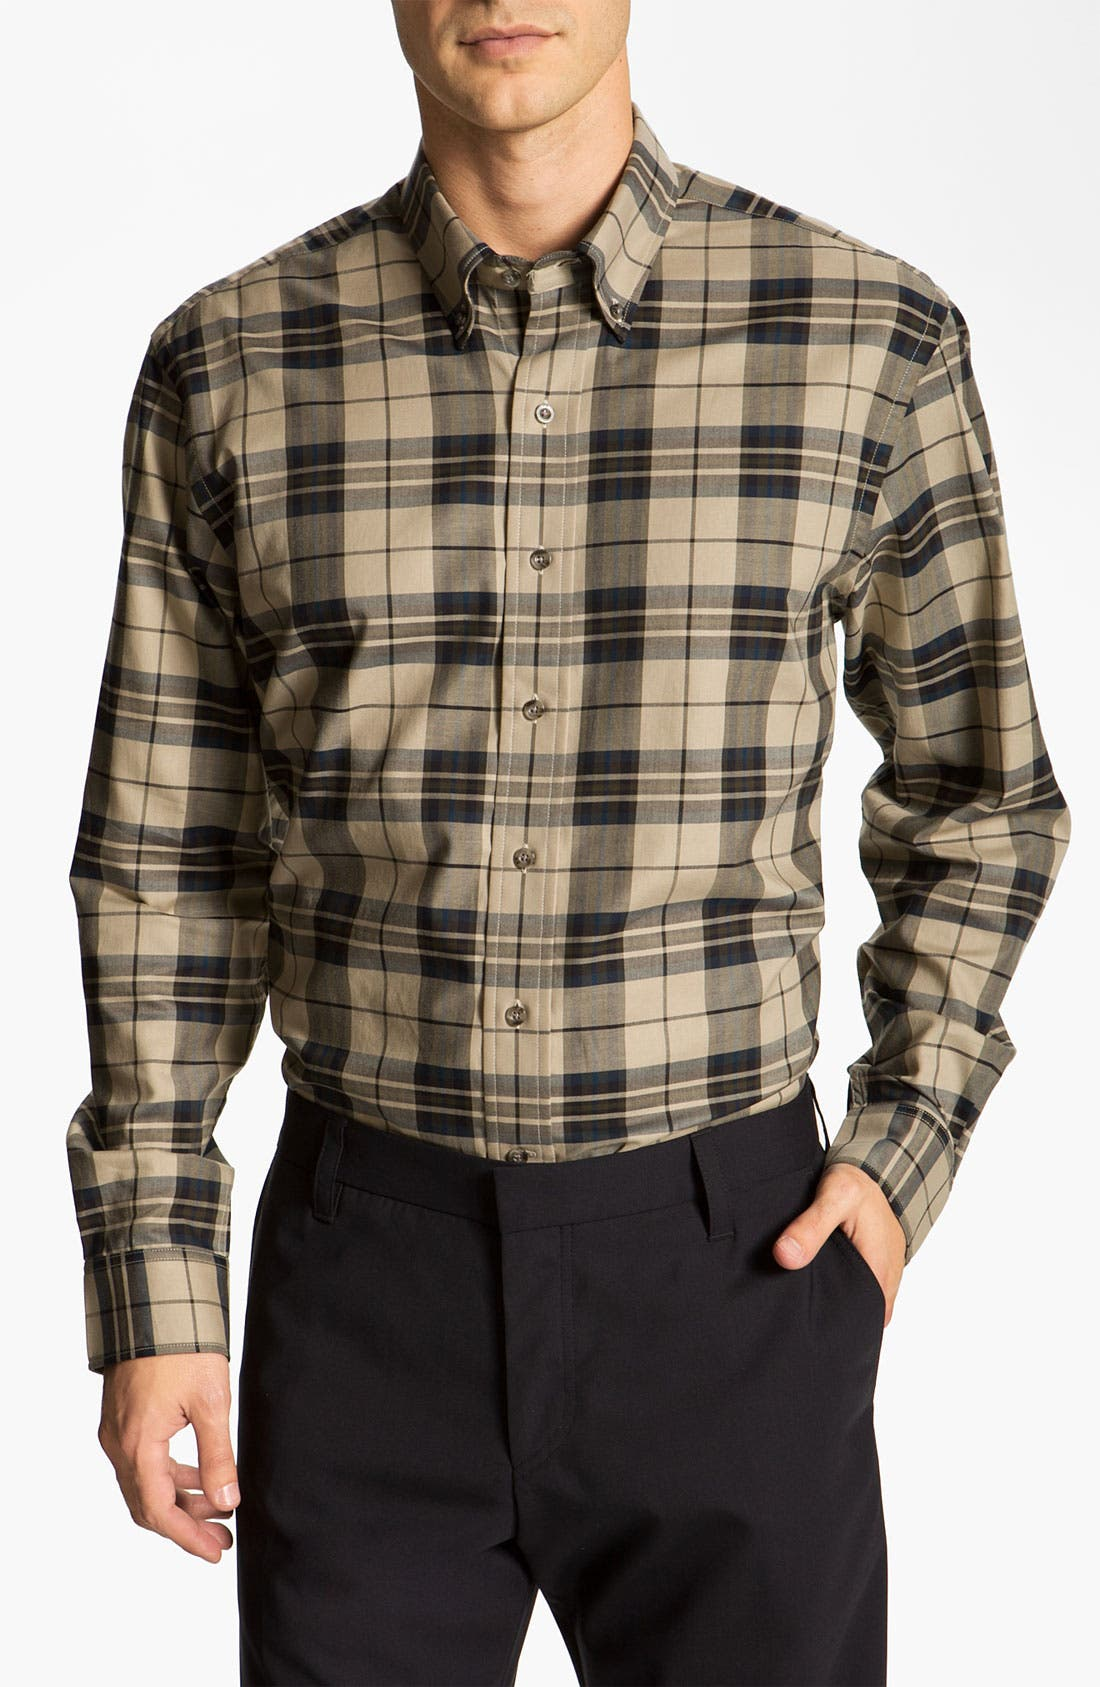 Alternate Image 1 Selected - Cutter & Buck 'Malden' Plaid Sport Shirt (Online Only)